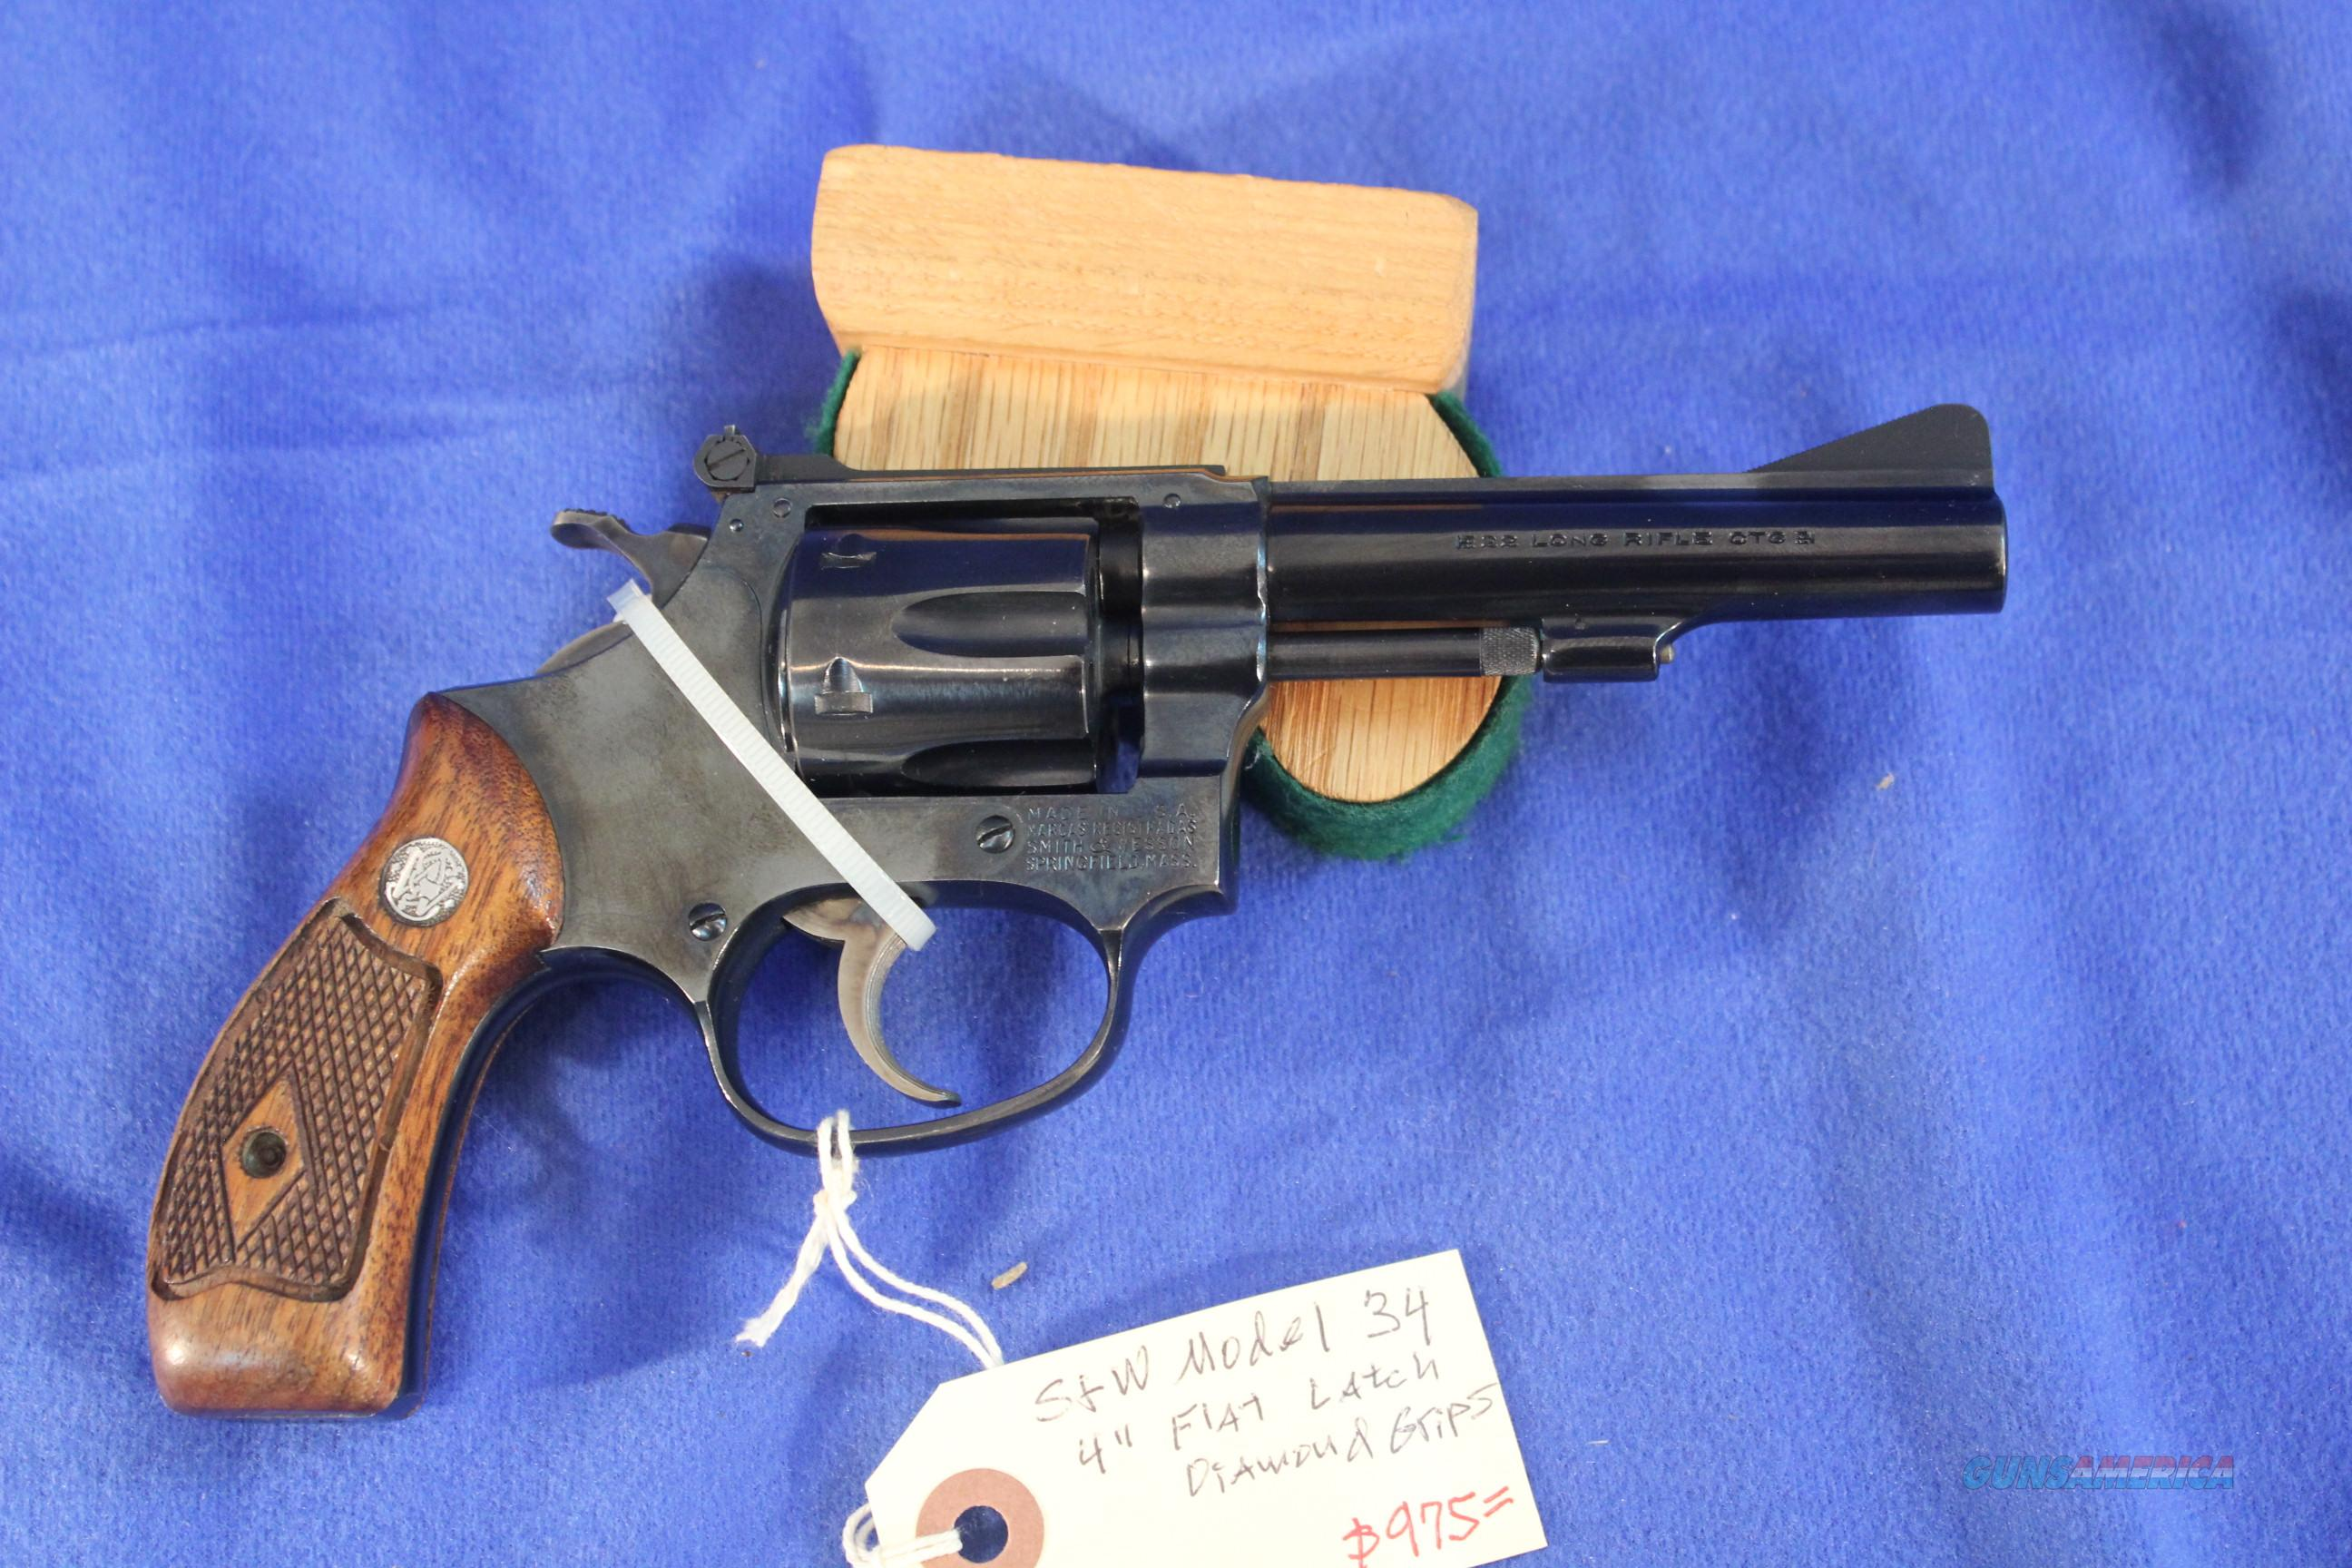 Smith & Wesson Model 34 .22lr early Flat Latch, Diamond Grips  Guns > Pistols > Smith & Wesson Revolvers > Pocket Pistols